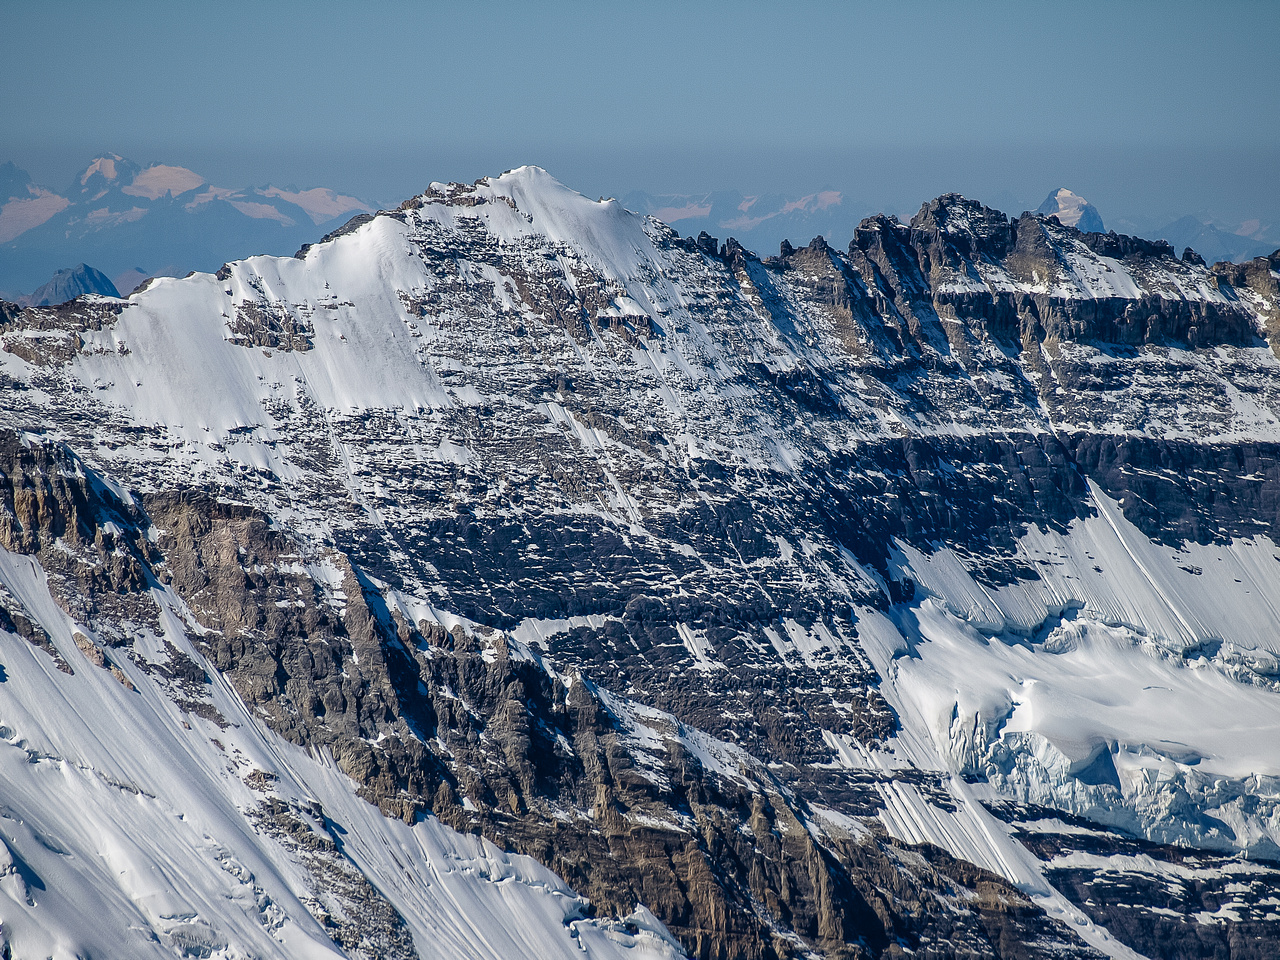 A great view of two of the classic 11,000ers in the Lake Louise Area. Victoria South on the left and North on the right.